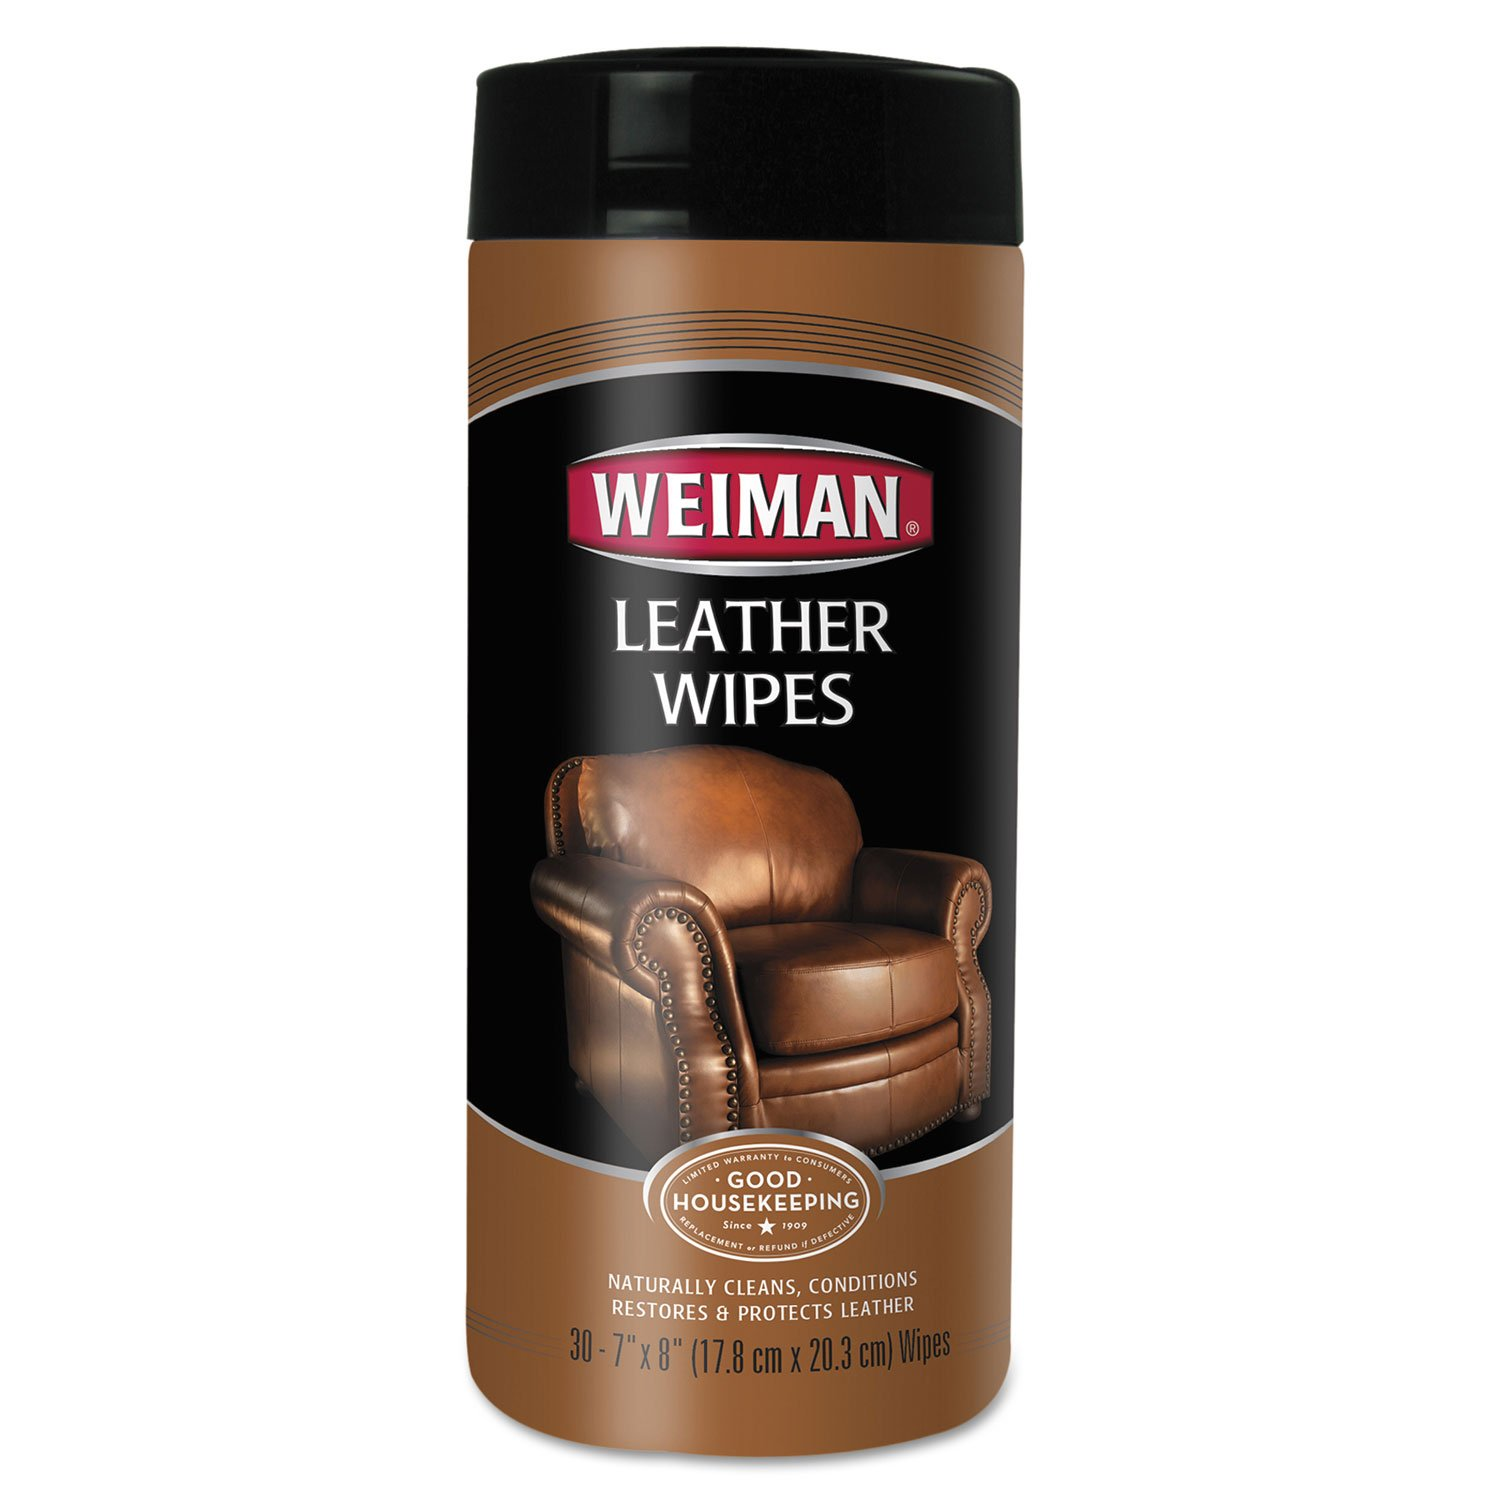 WEIMAN WHOLESALE PRICER Leather Wipes, 7 X 8, 30/Canister, 4 Canisters/Carton, New by WEIMAN WHOLESALE PRICER